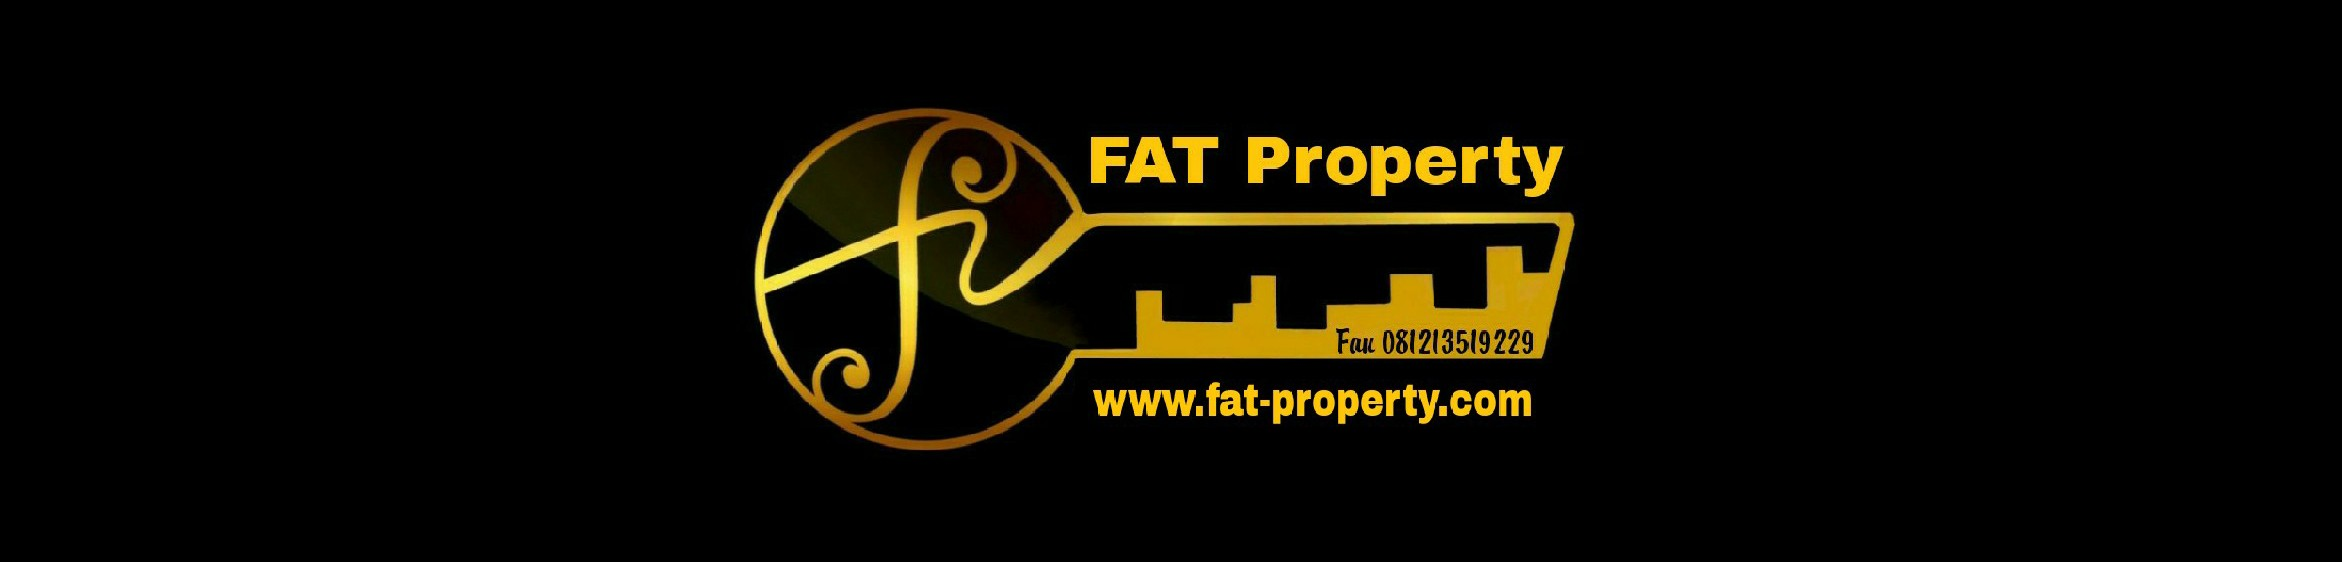 FAT Property